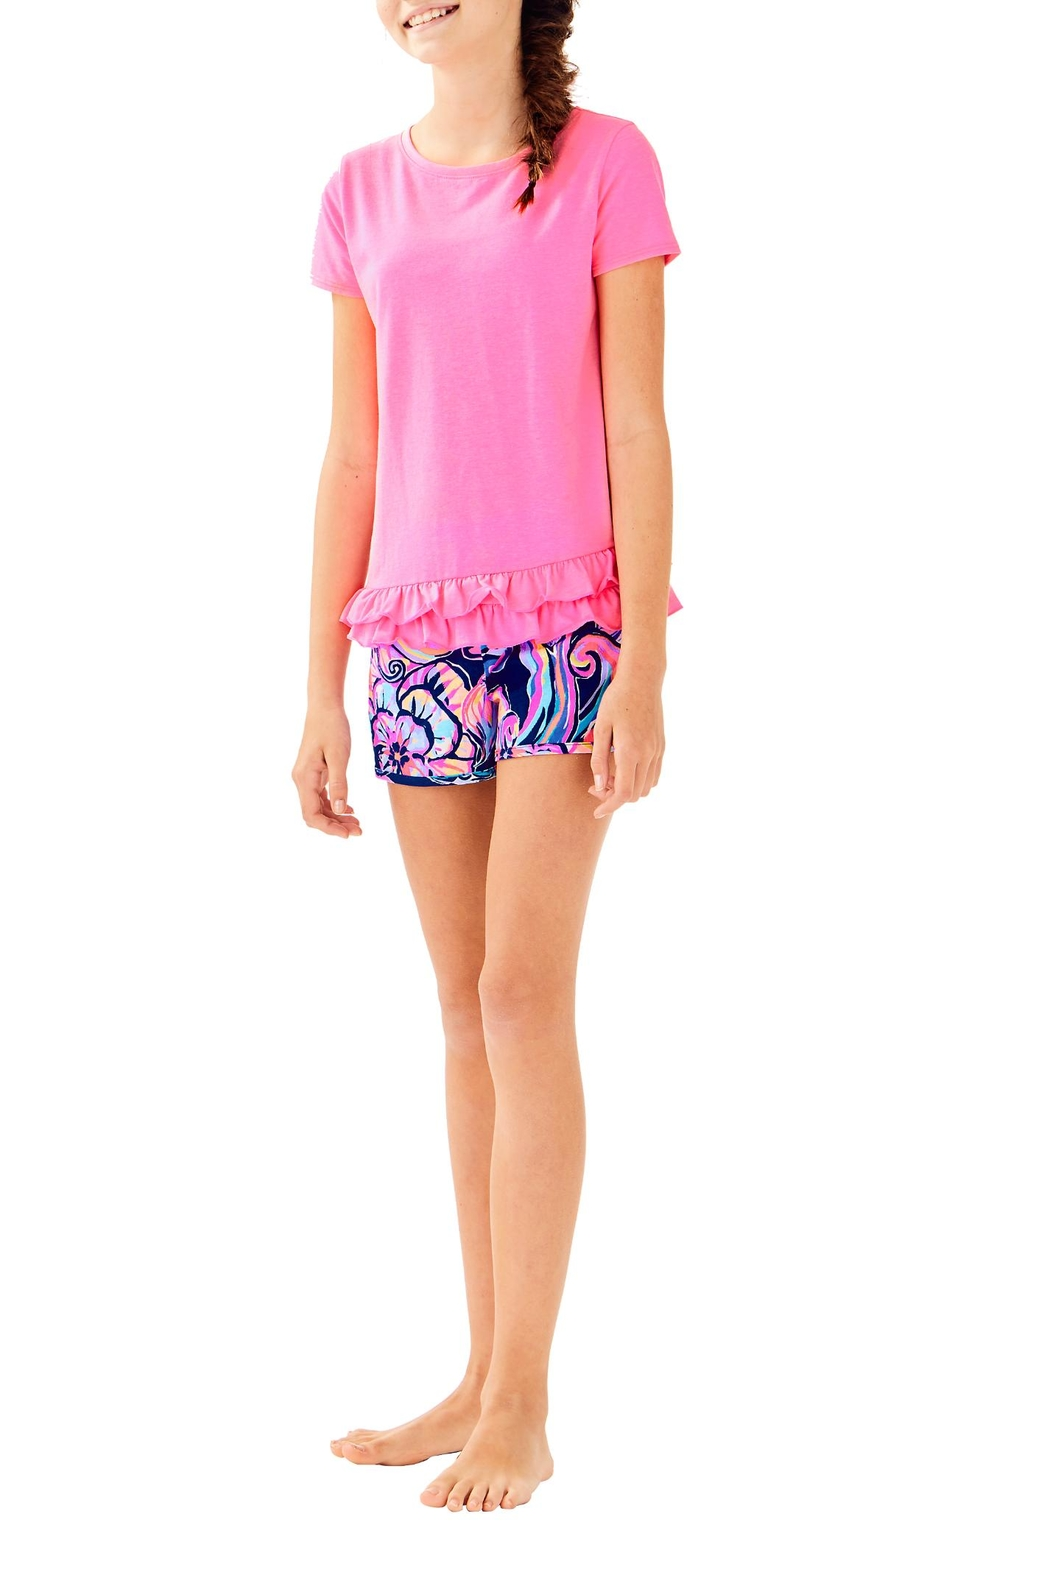 Lilly Pulitzer Girls Leightan Top - Side Cropped Image